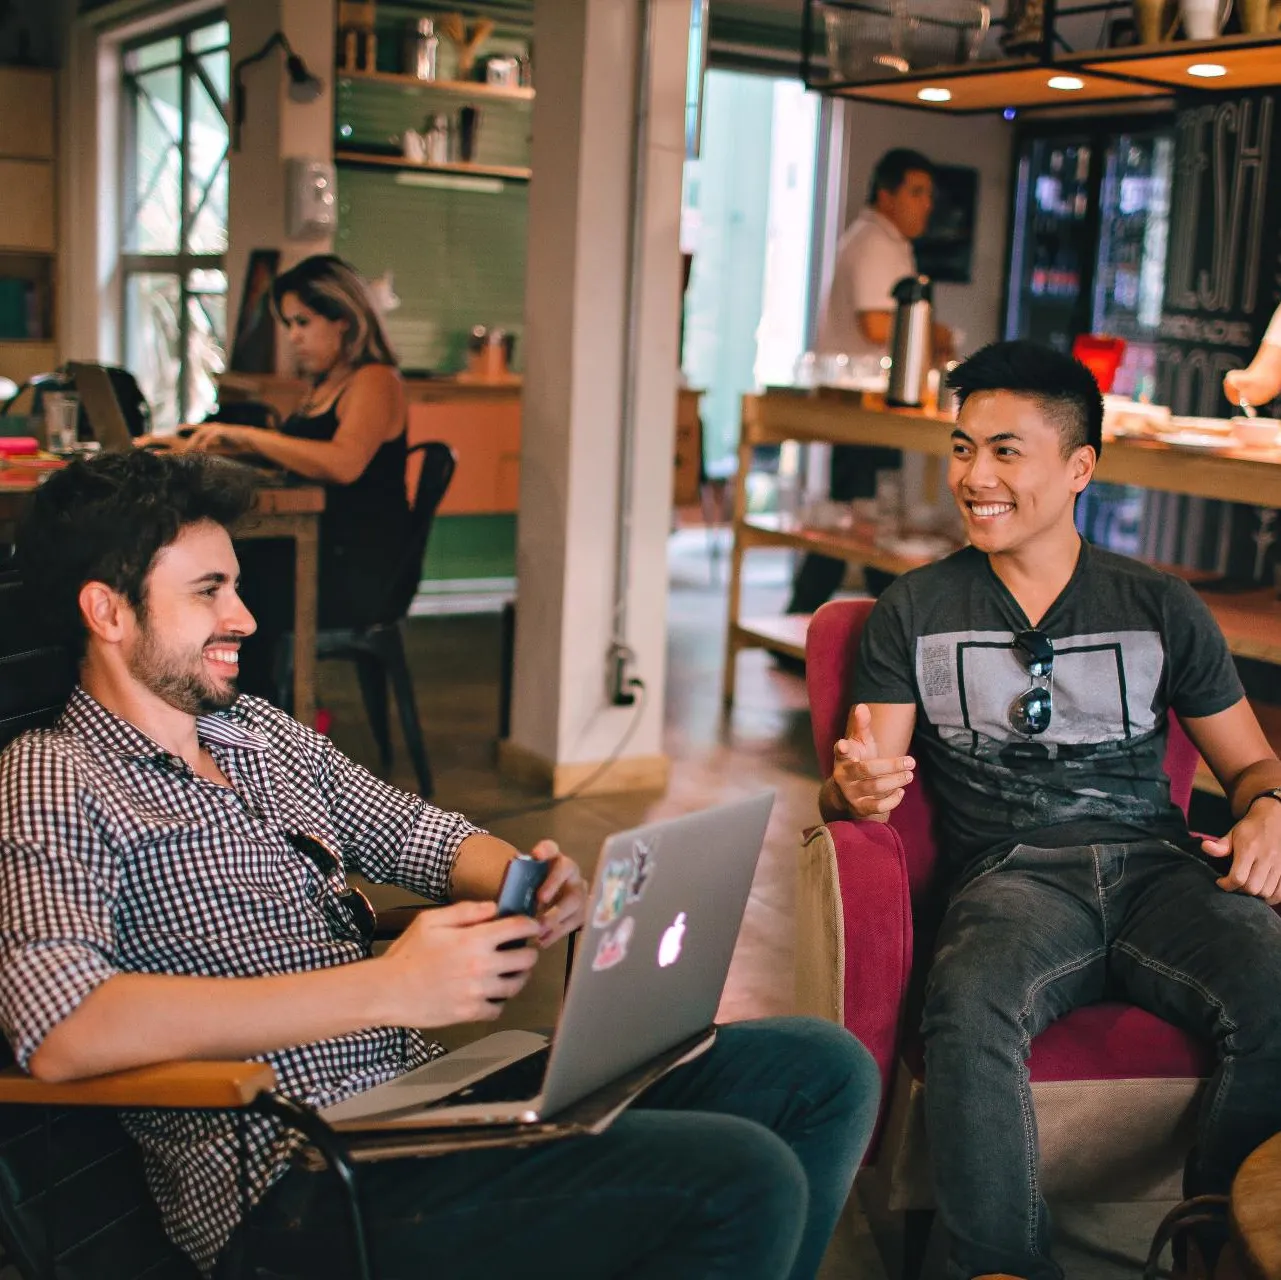 4 trends for the workplaces of tomorrow